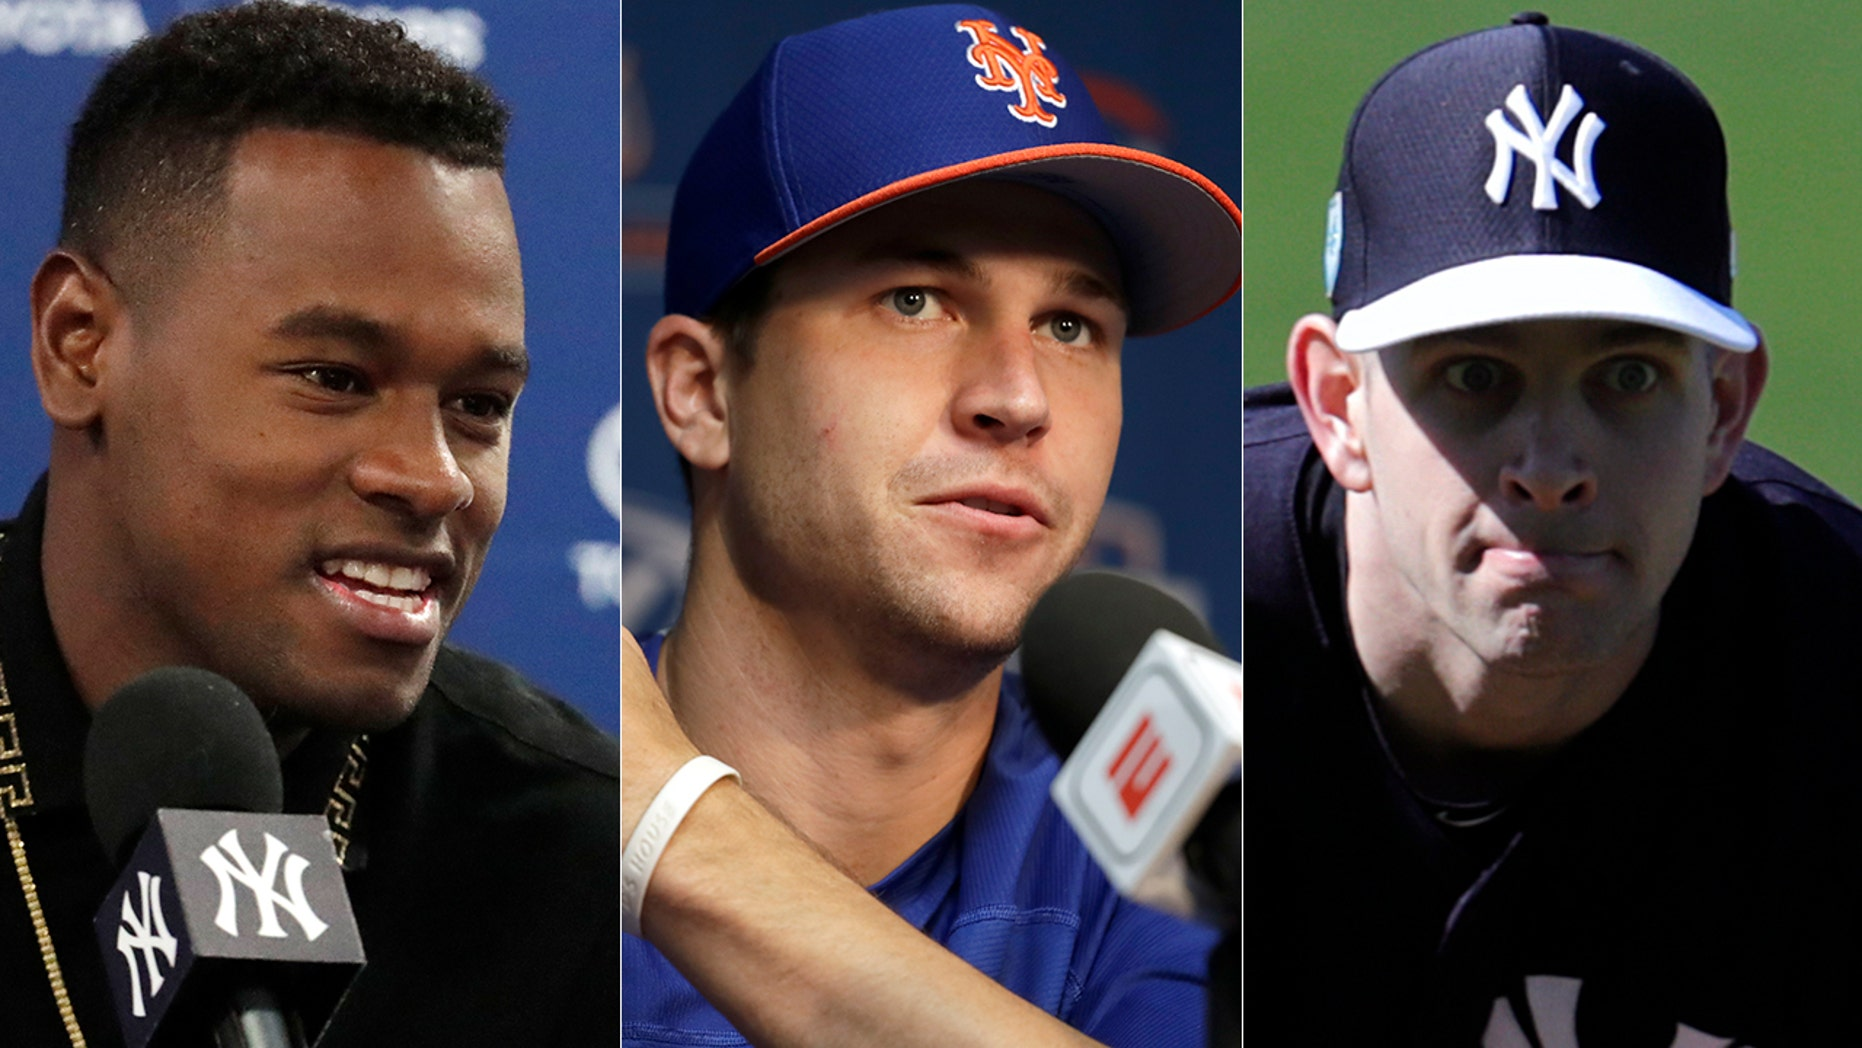 Luis Severino, left, and James Paxton, right, jabbed Jacob deGrom, center, over his contract extension.